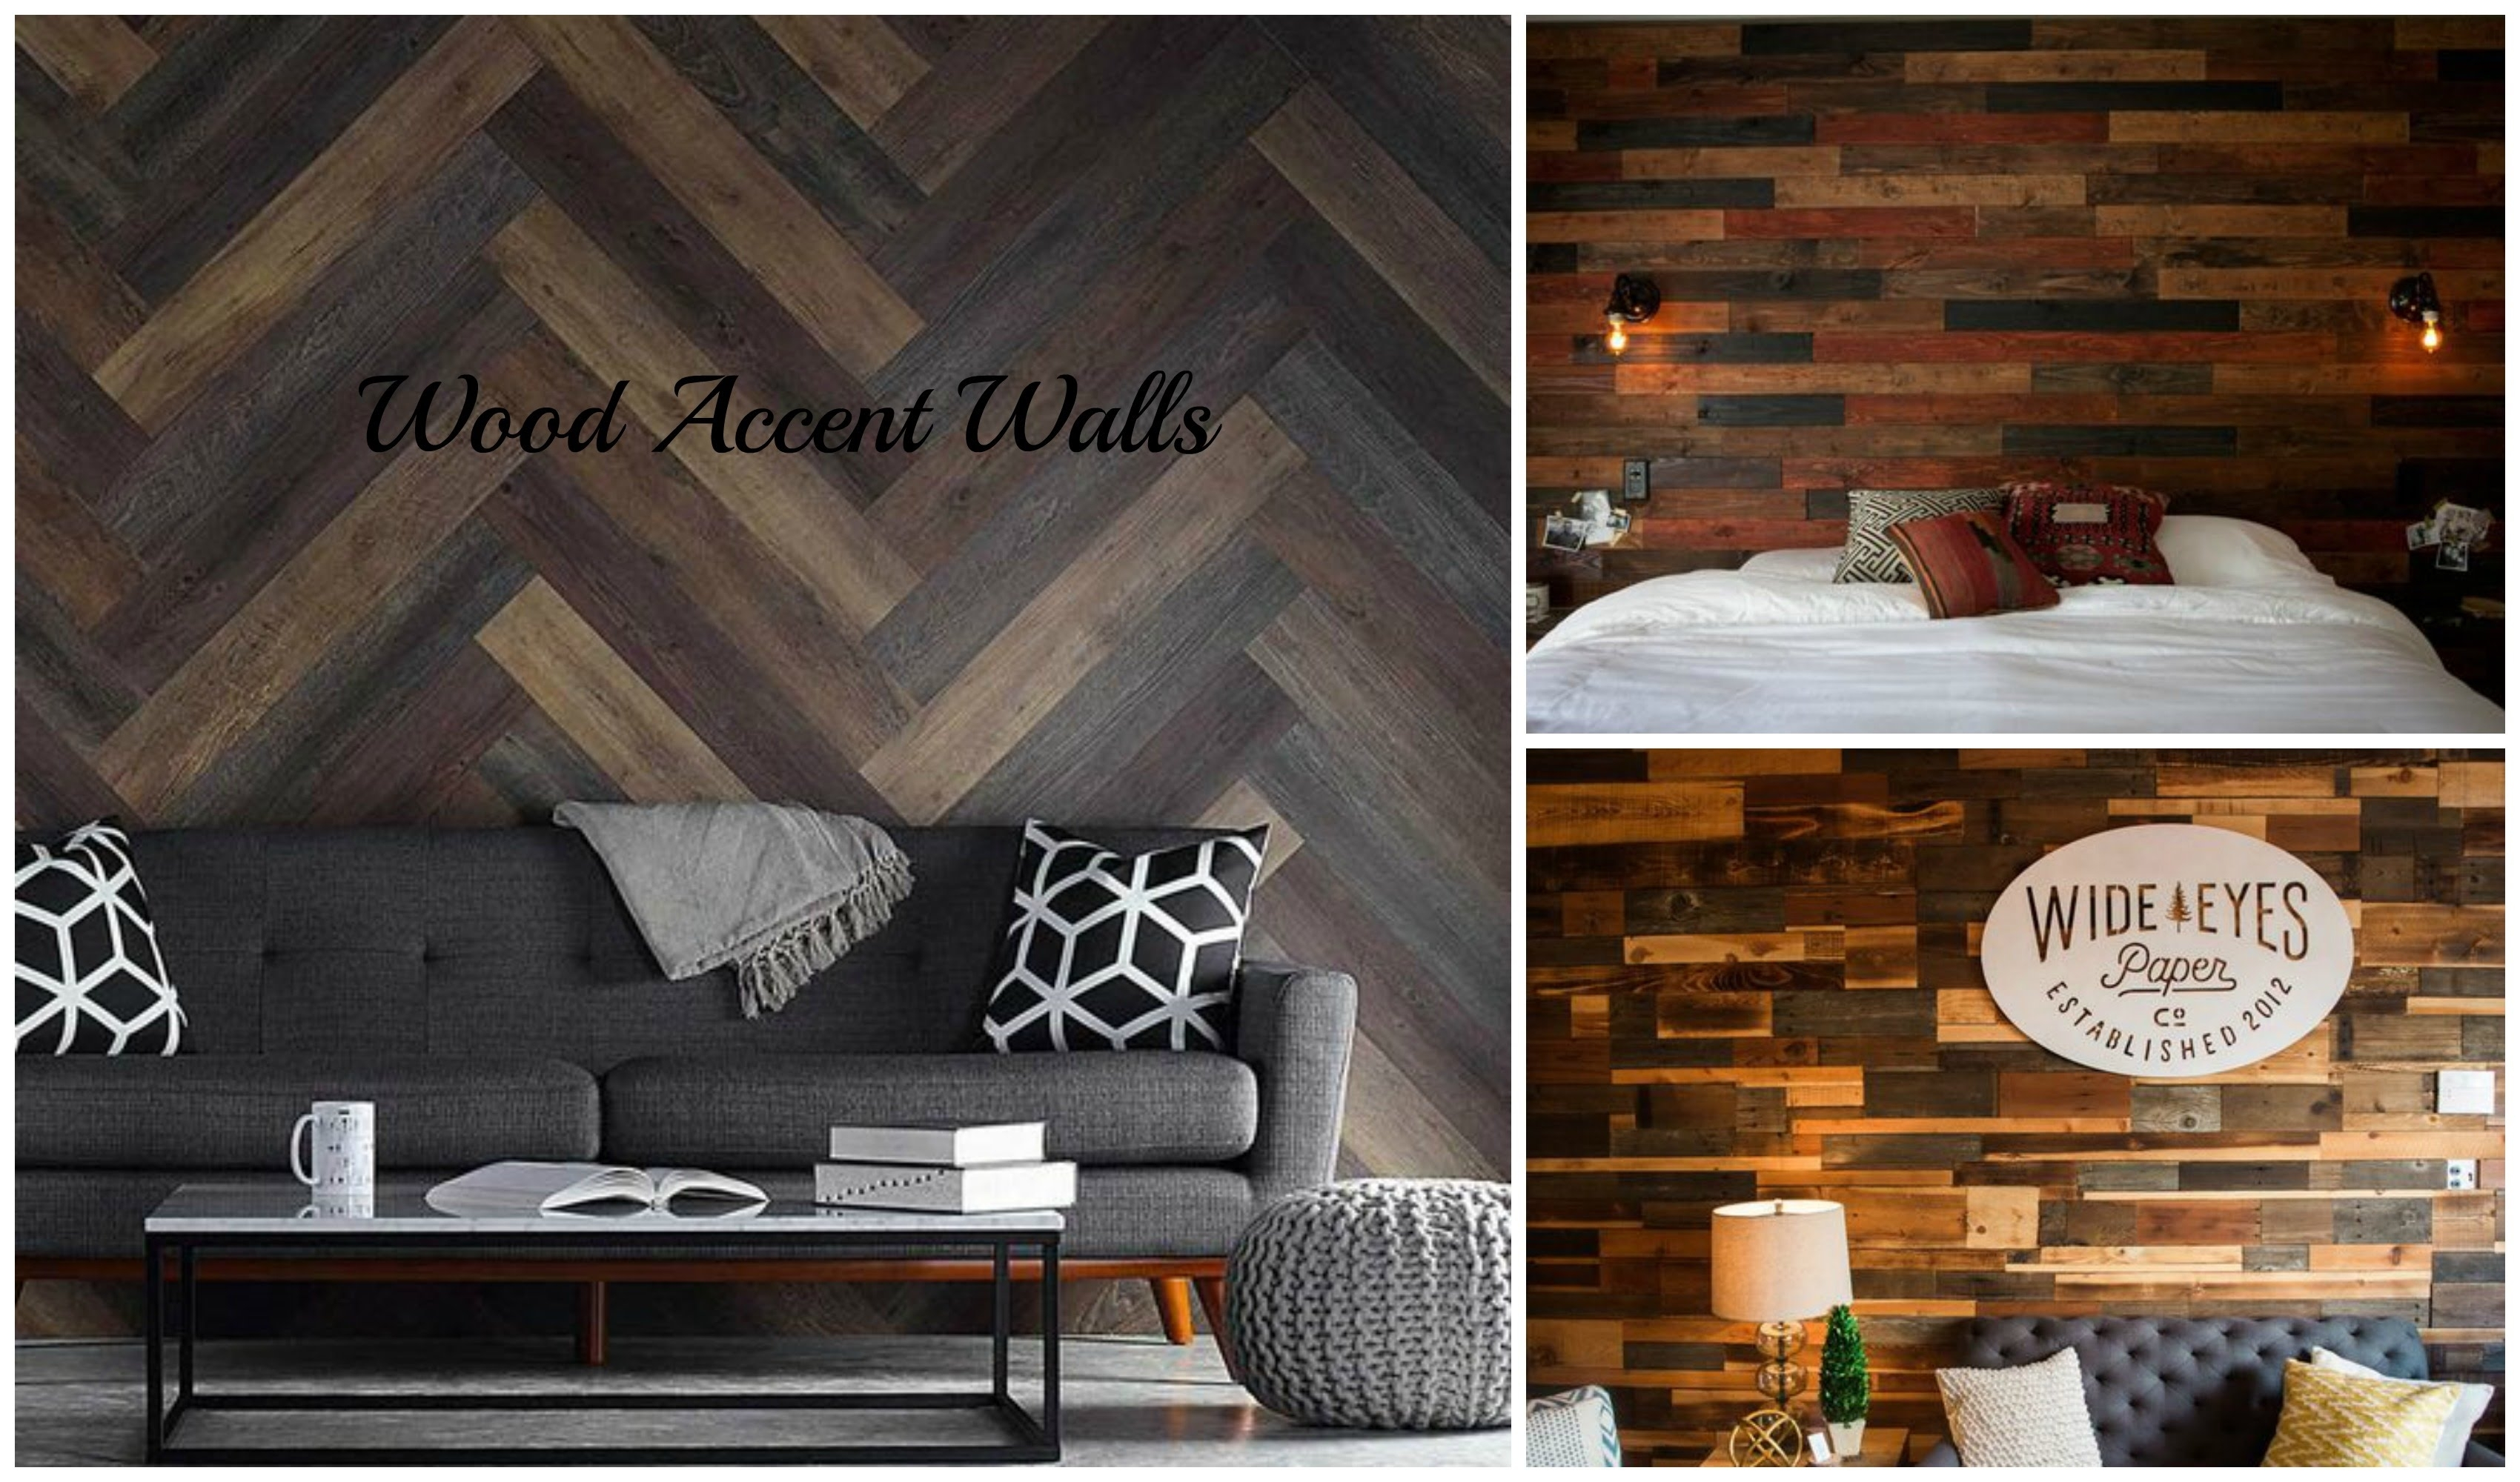 Wood Accent Wall | Pallet Wall Ideas – Youtube With Regard To Most Recently Released Wood Wall Accents (View 10 of 15)